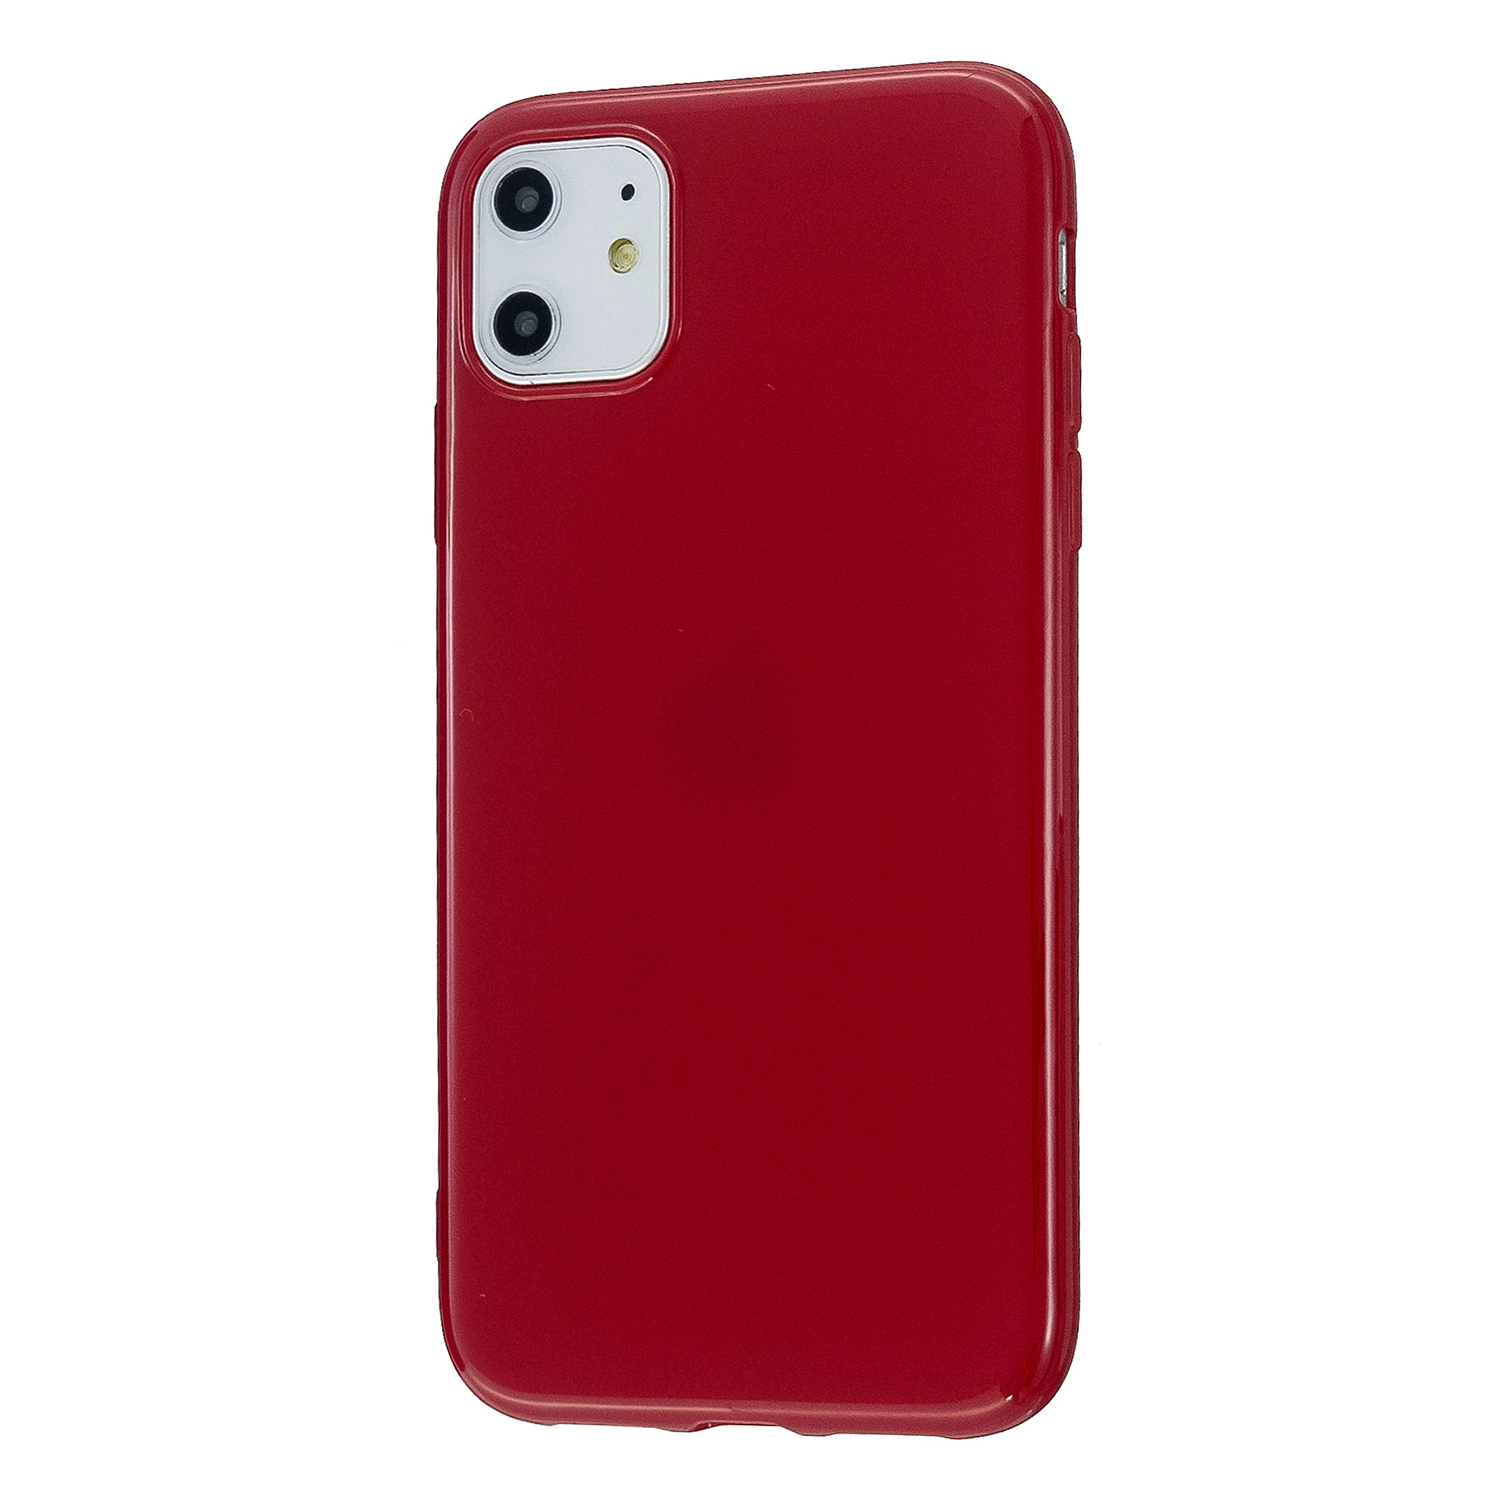 For iPhone 11/11 Pro/11 Pro Max Smartphone Cover Slim Fit Glossy TPU Phone Case Full Body Protection Shell Rose red